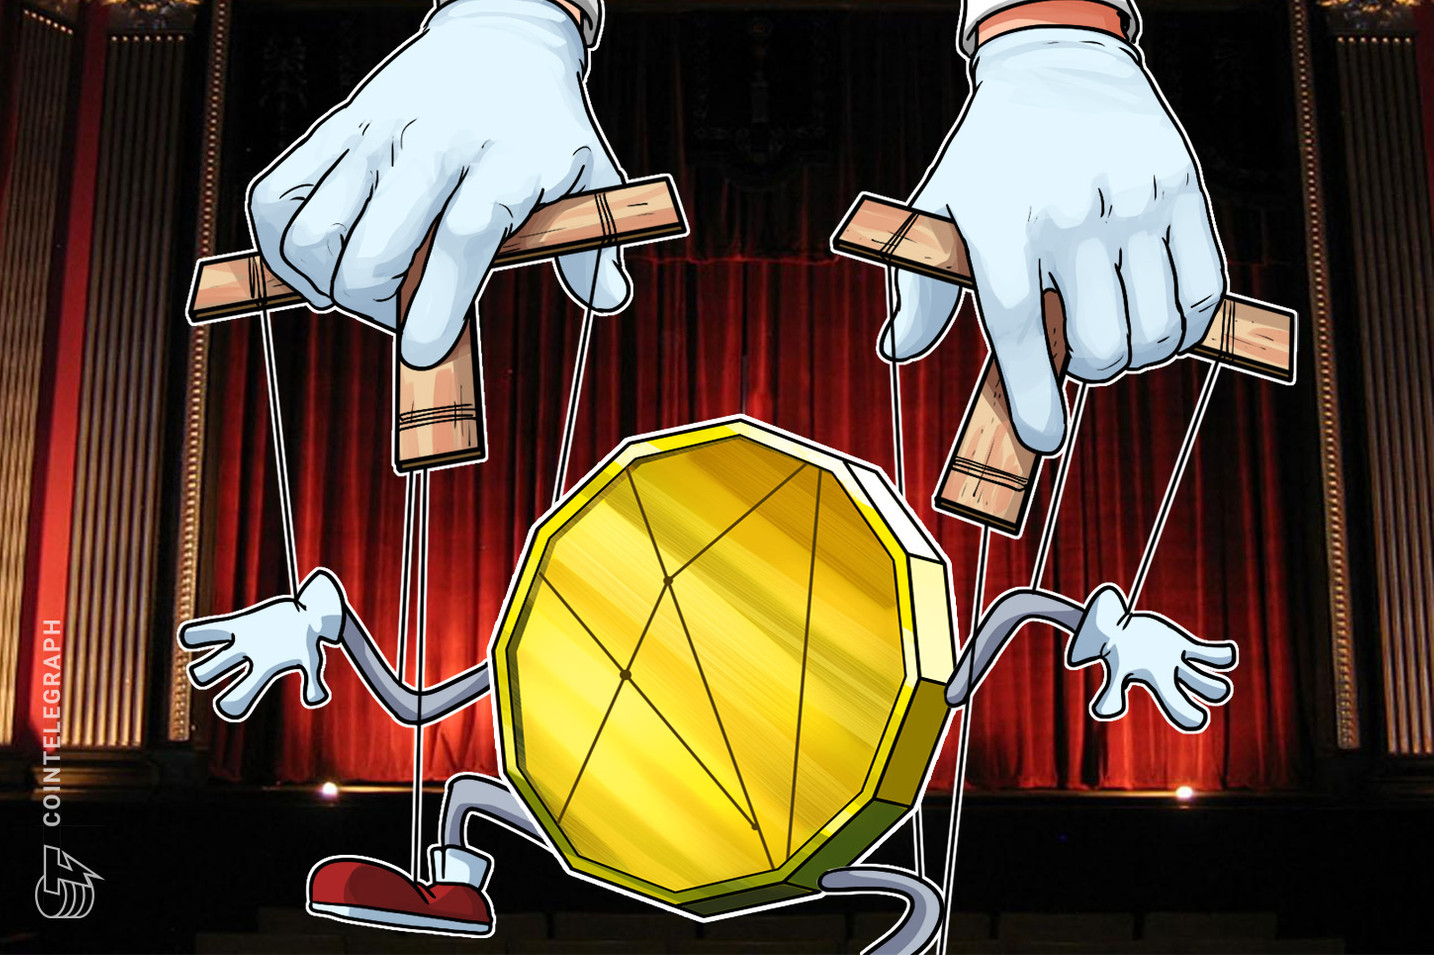 Bot-Enabled Market Manipulation Rife on Decentralized Exchanges, Researchers Claim